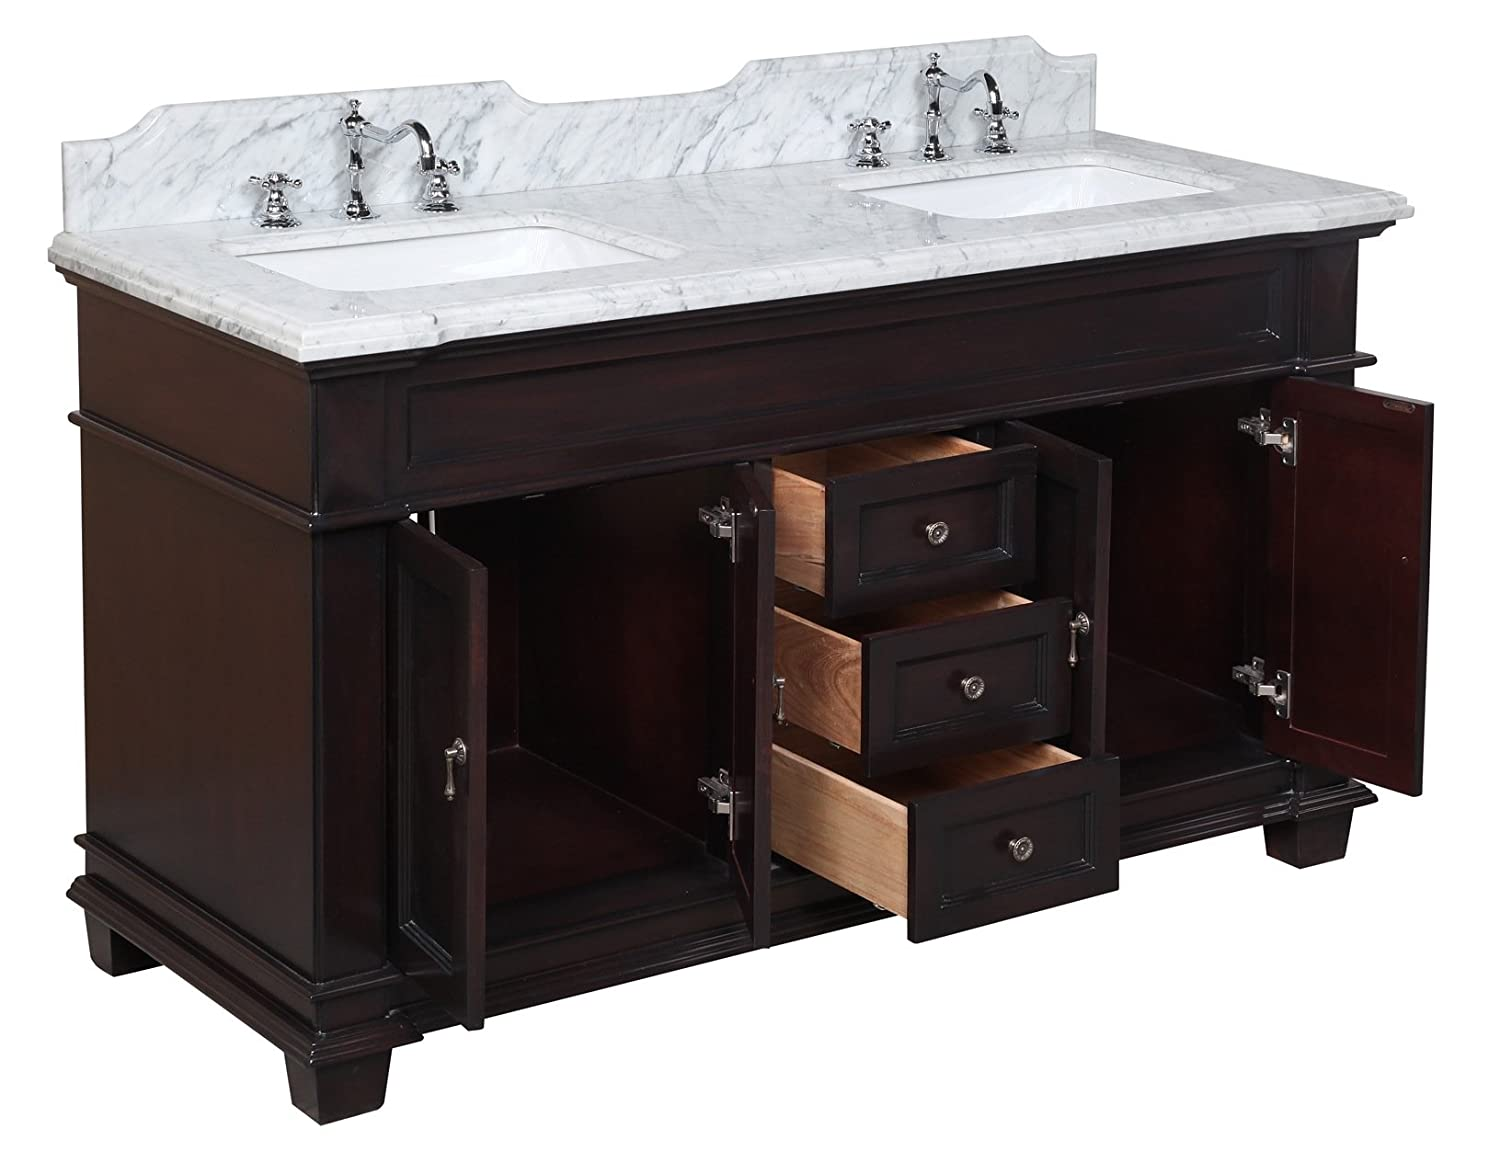 kitchen bath collection elizabeth double sink bathroom vanity with marble countertop cabinet with soft close function and undermount ceramic